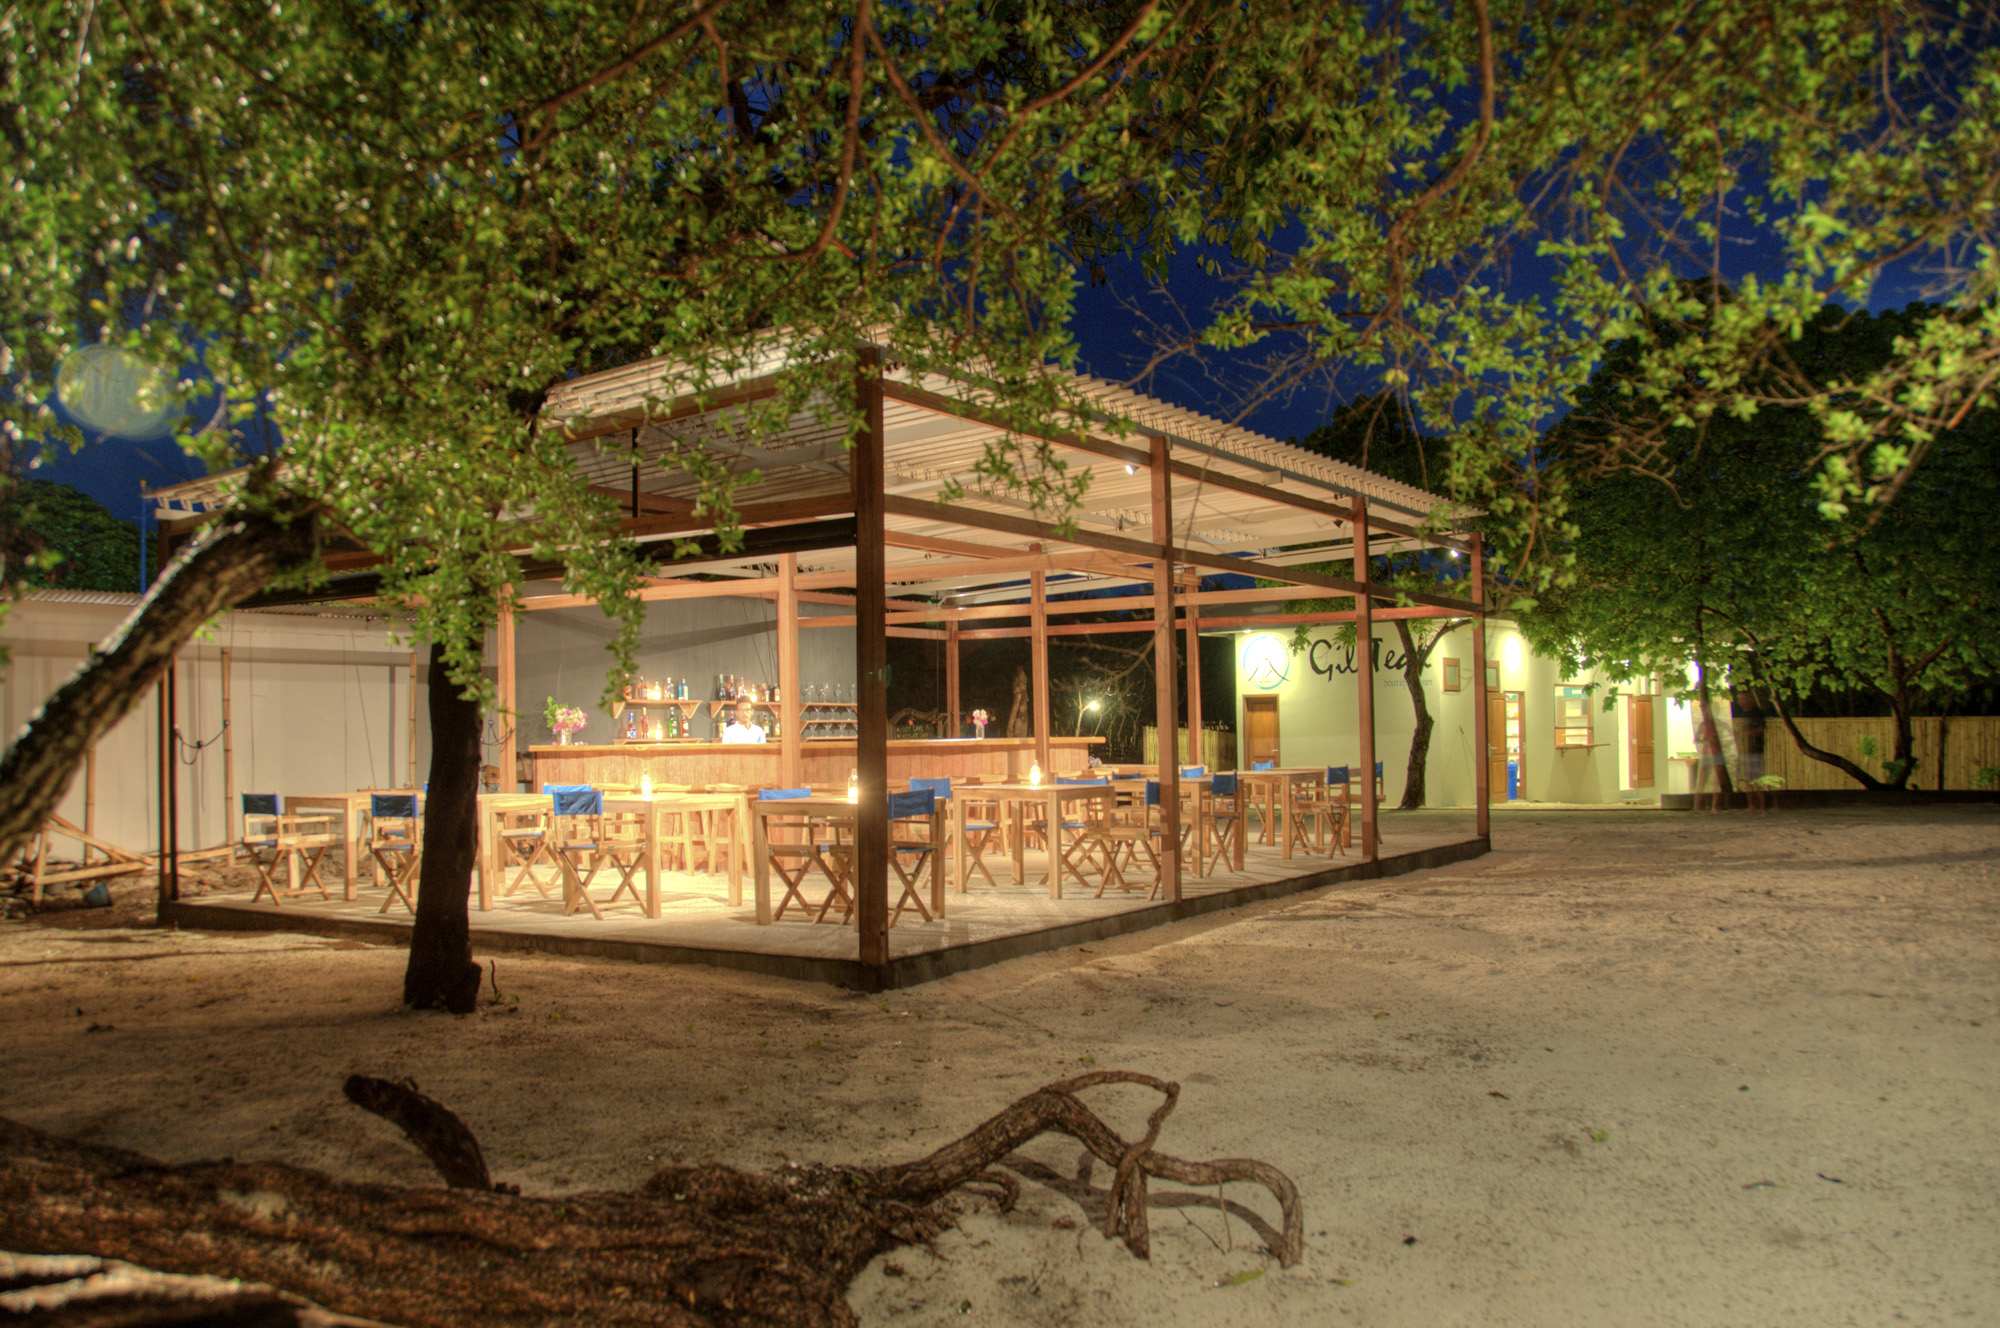 Gili Teak beach bar night